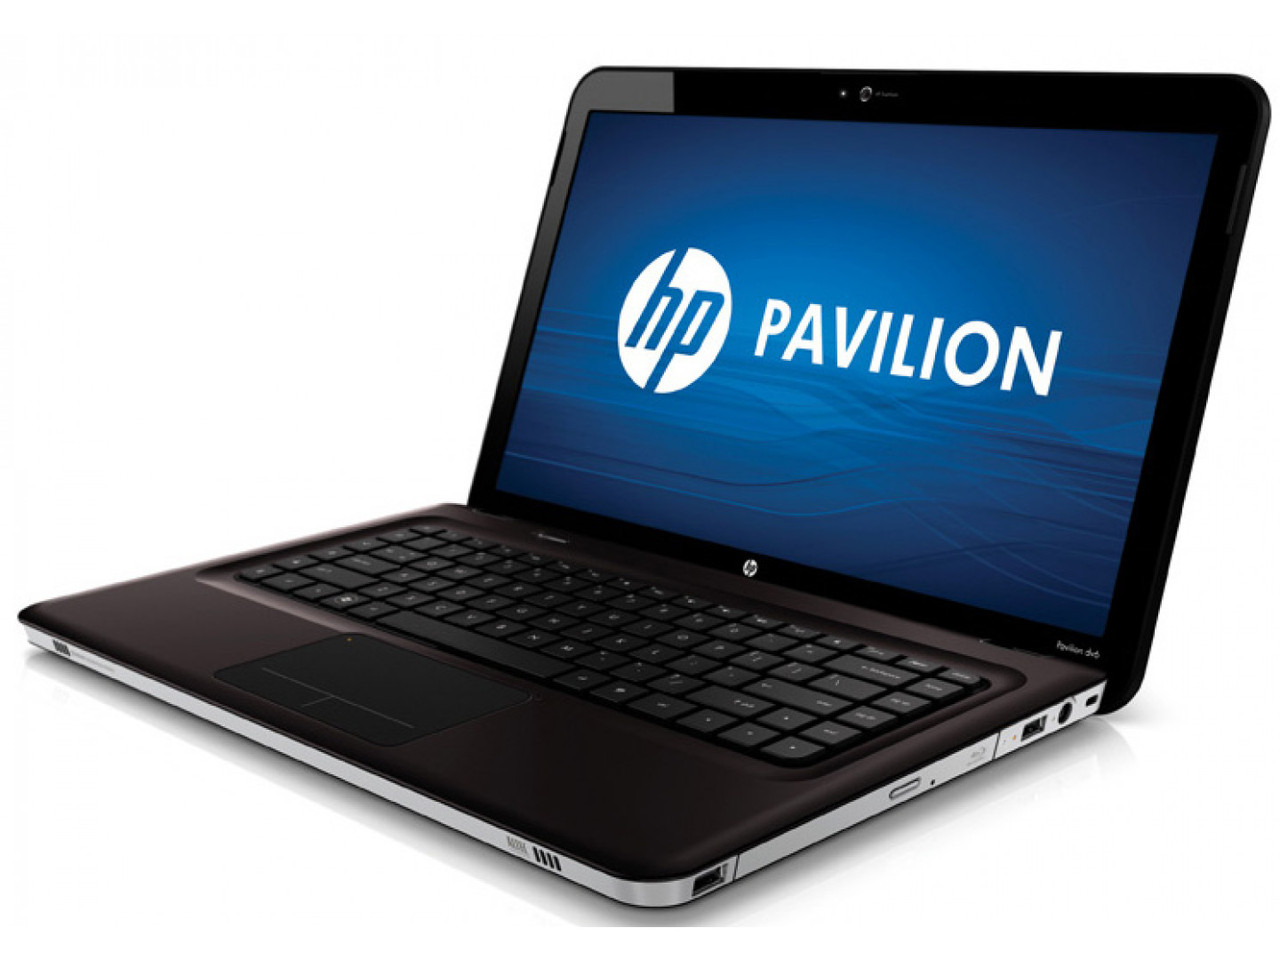 Ноутбук HP Pavilion dv6-2136so-AMD Athlon II M320-2.1GHz-4Gb-DDR2-500Gb-HDD-W15.6-Web-DVD-R-(C-)-Б/У